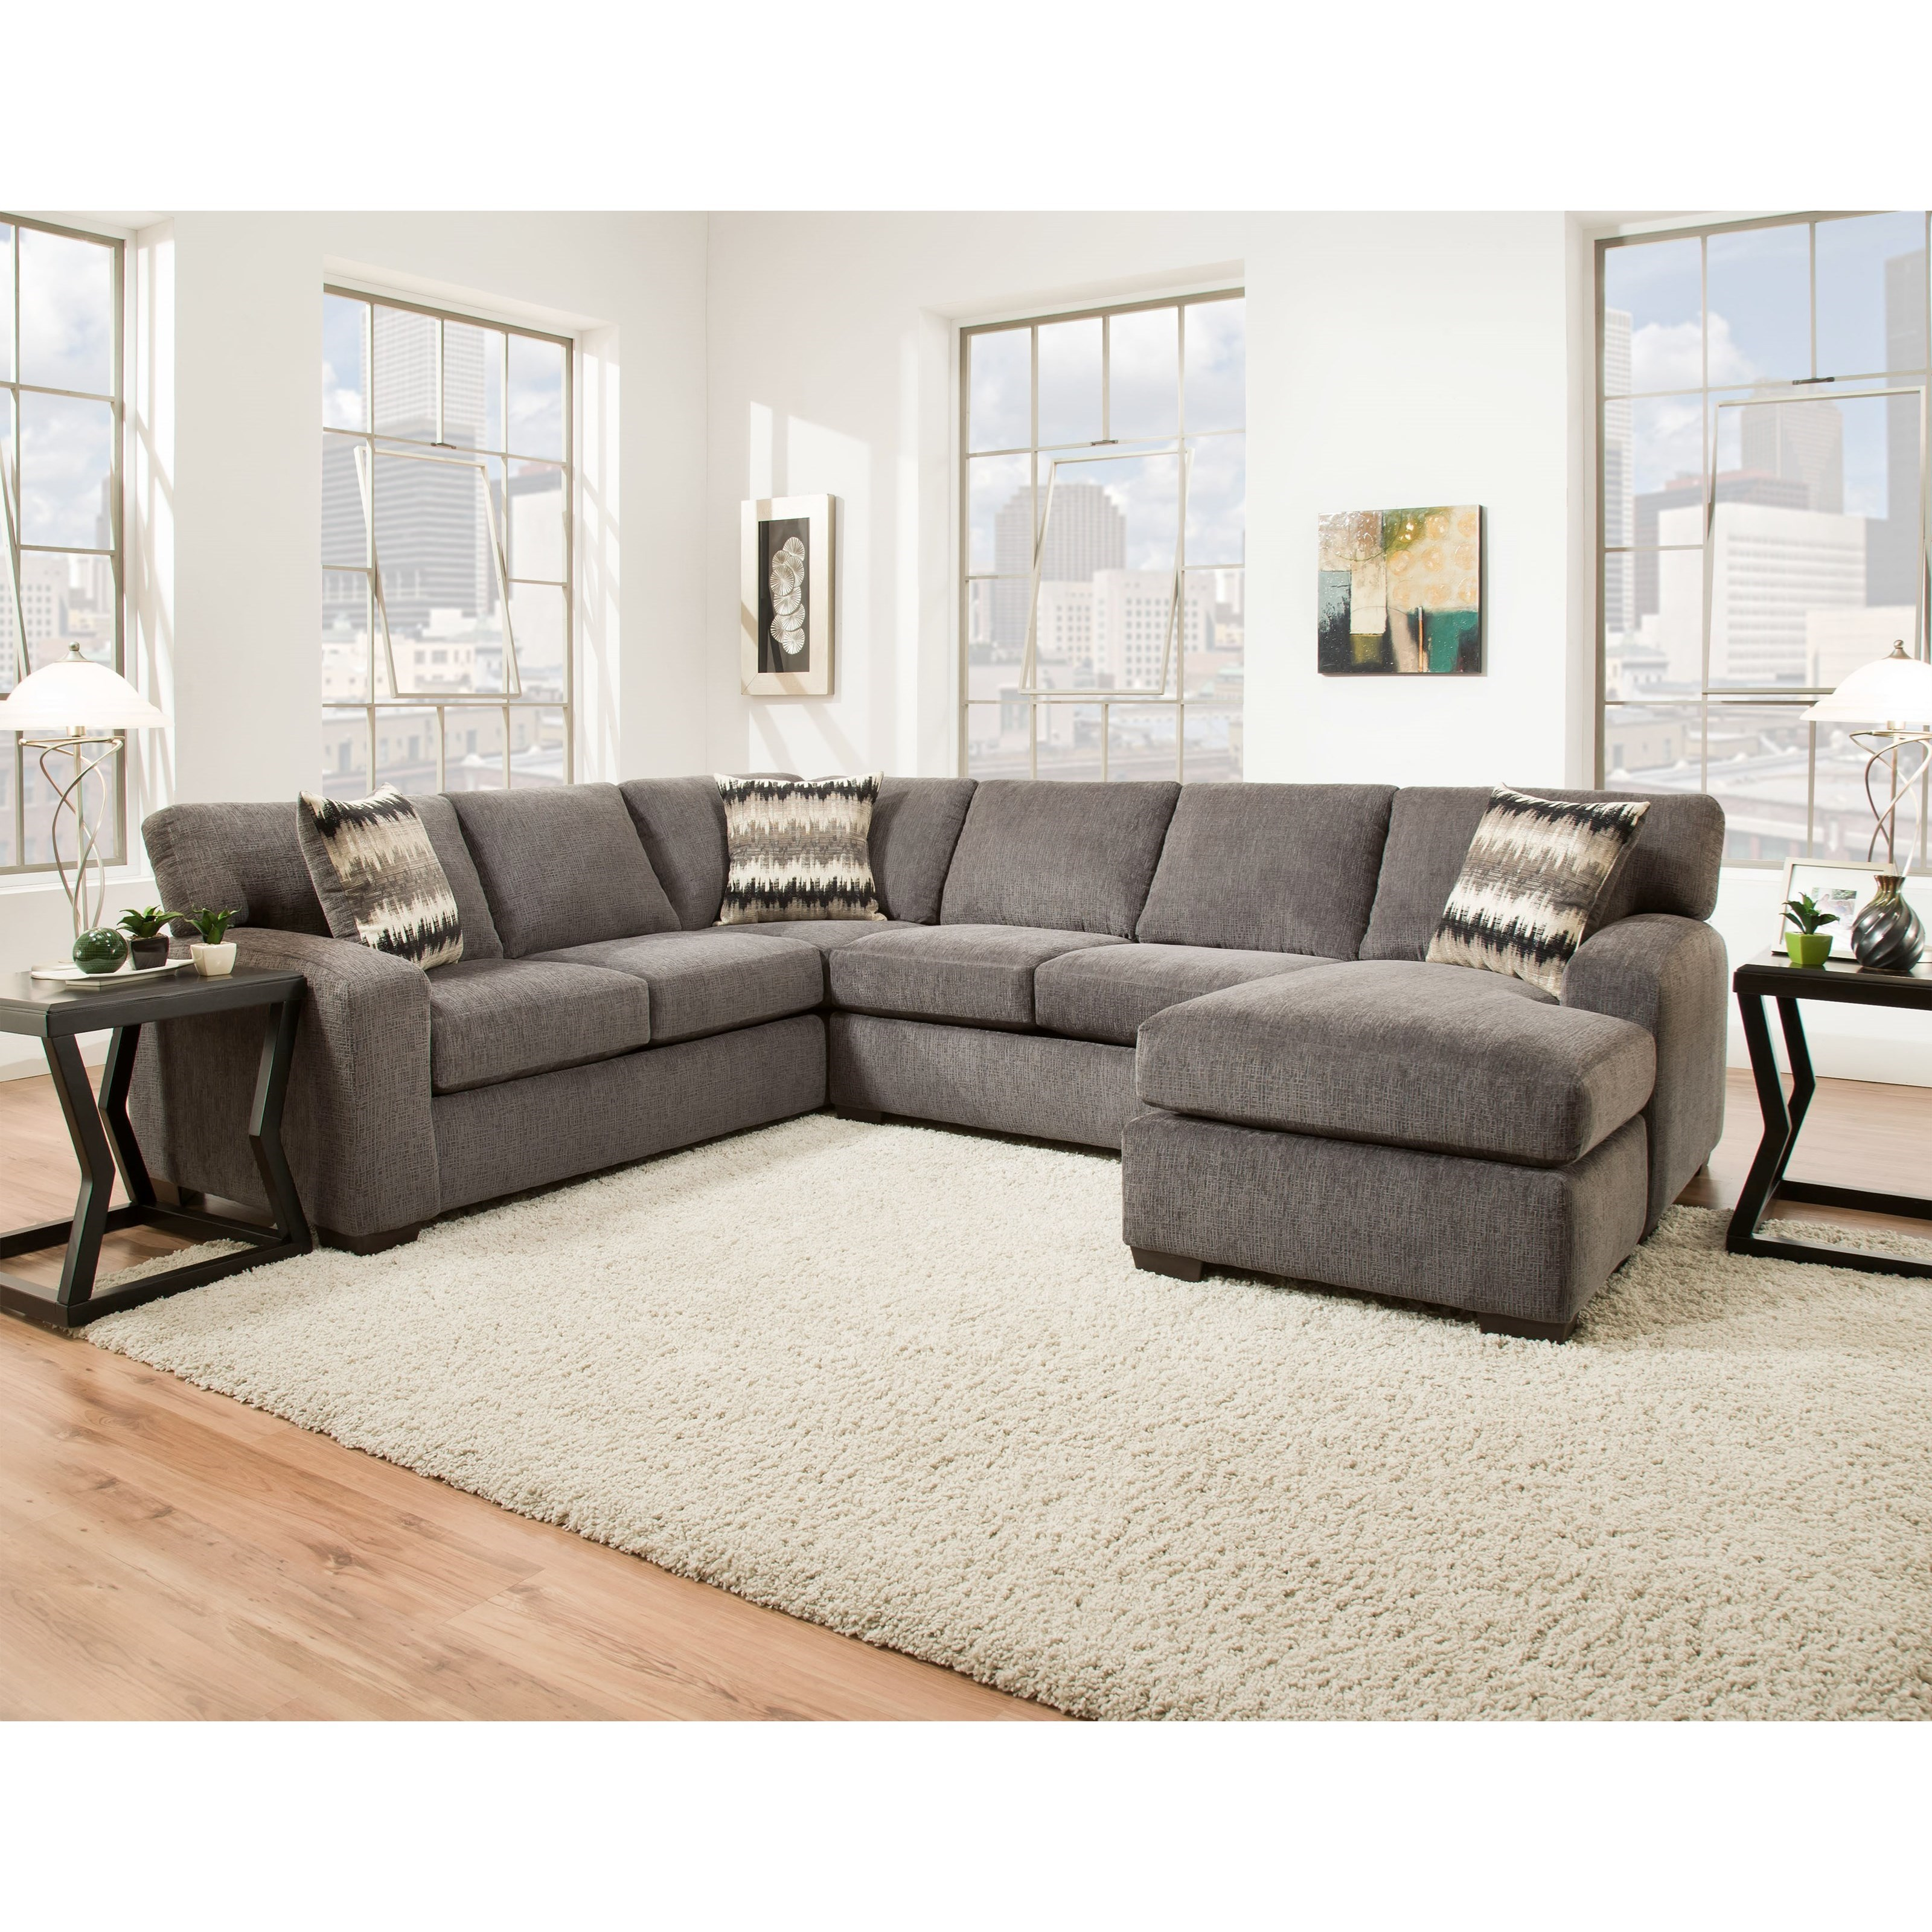 American Furniture 5250 Sectional Sofa - Seats 5 - Item Number 5210+5230-  sc 1 st  Prime Brothers Furniture : american furniture sectional - Sectionals, Sofas & Couches